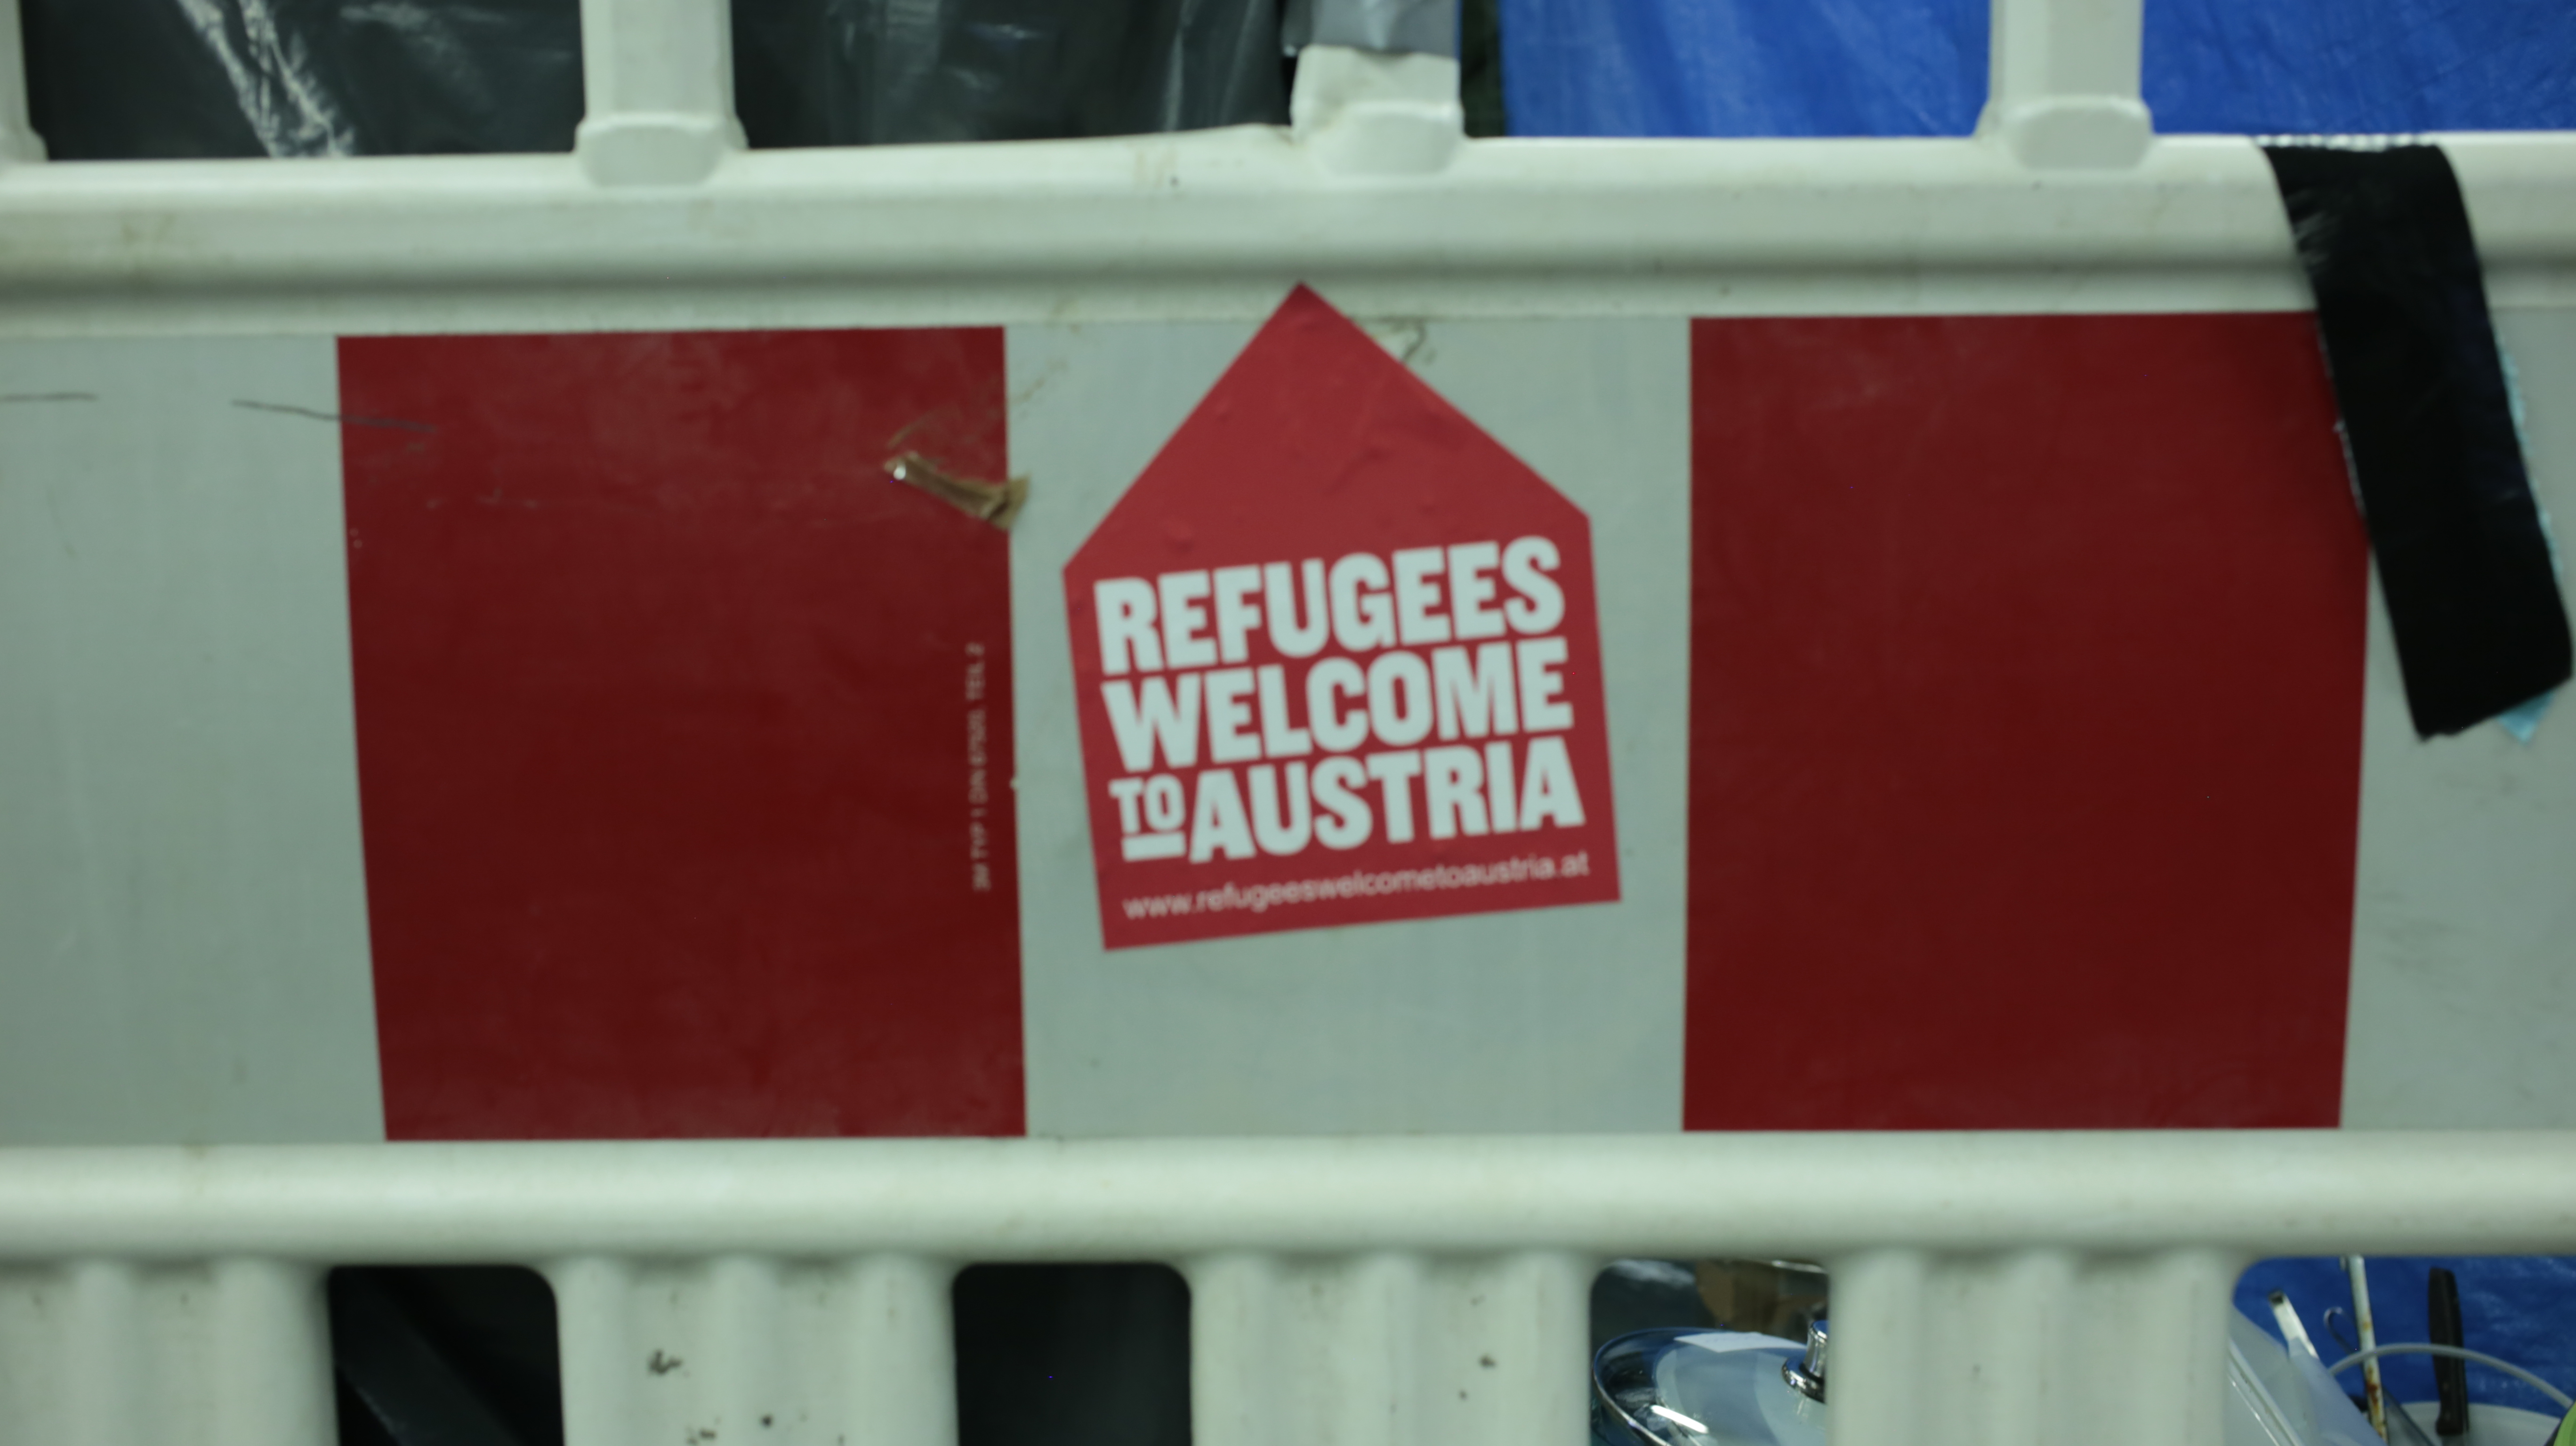 refugees welcome austria